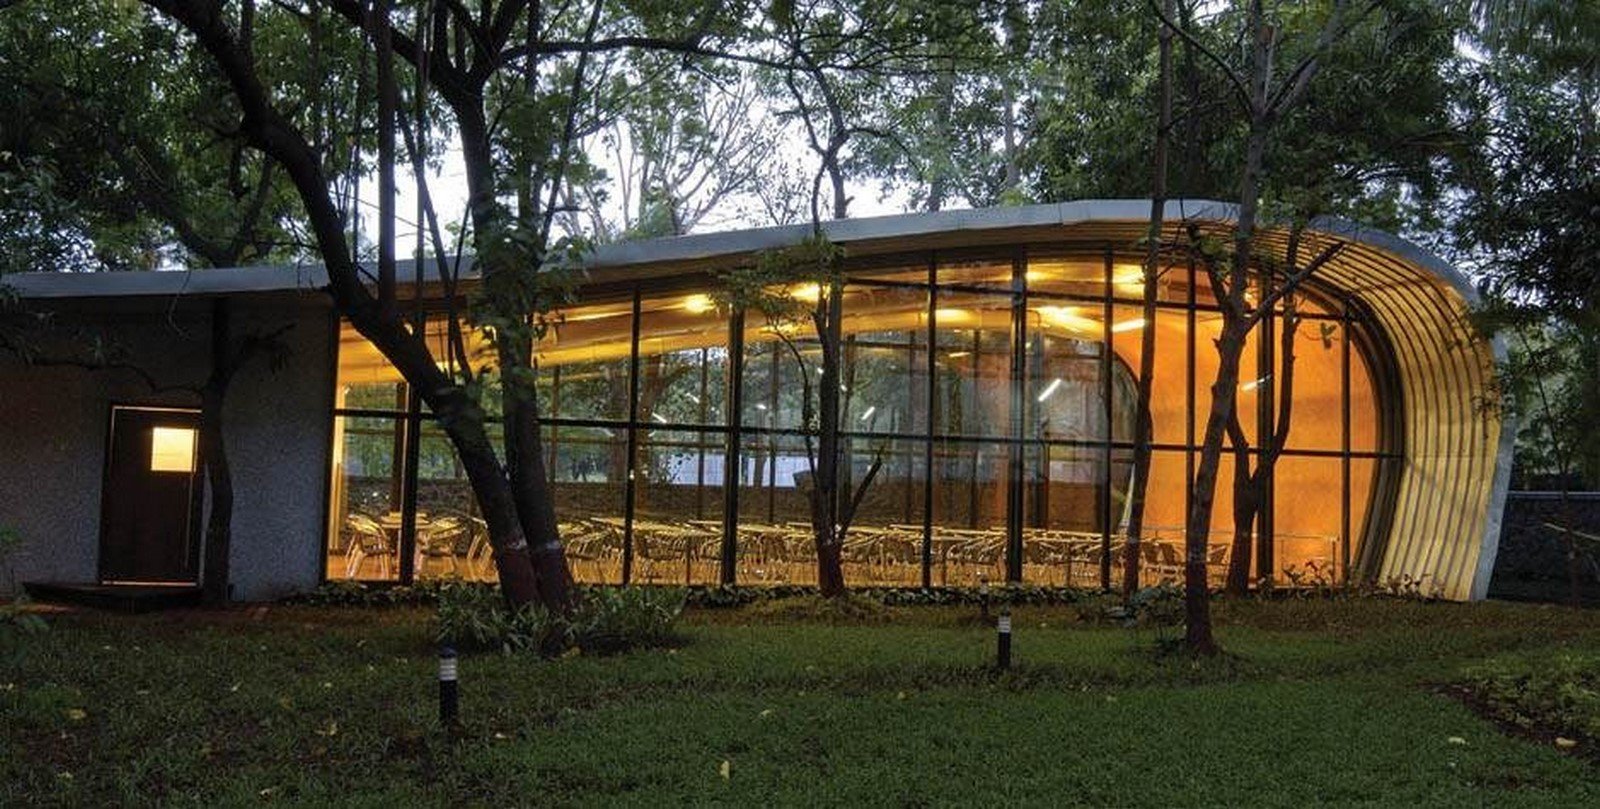 HCC Cafeteria by Sanjay Puri Architects: Coinciding with the surroundings - Sheet1